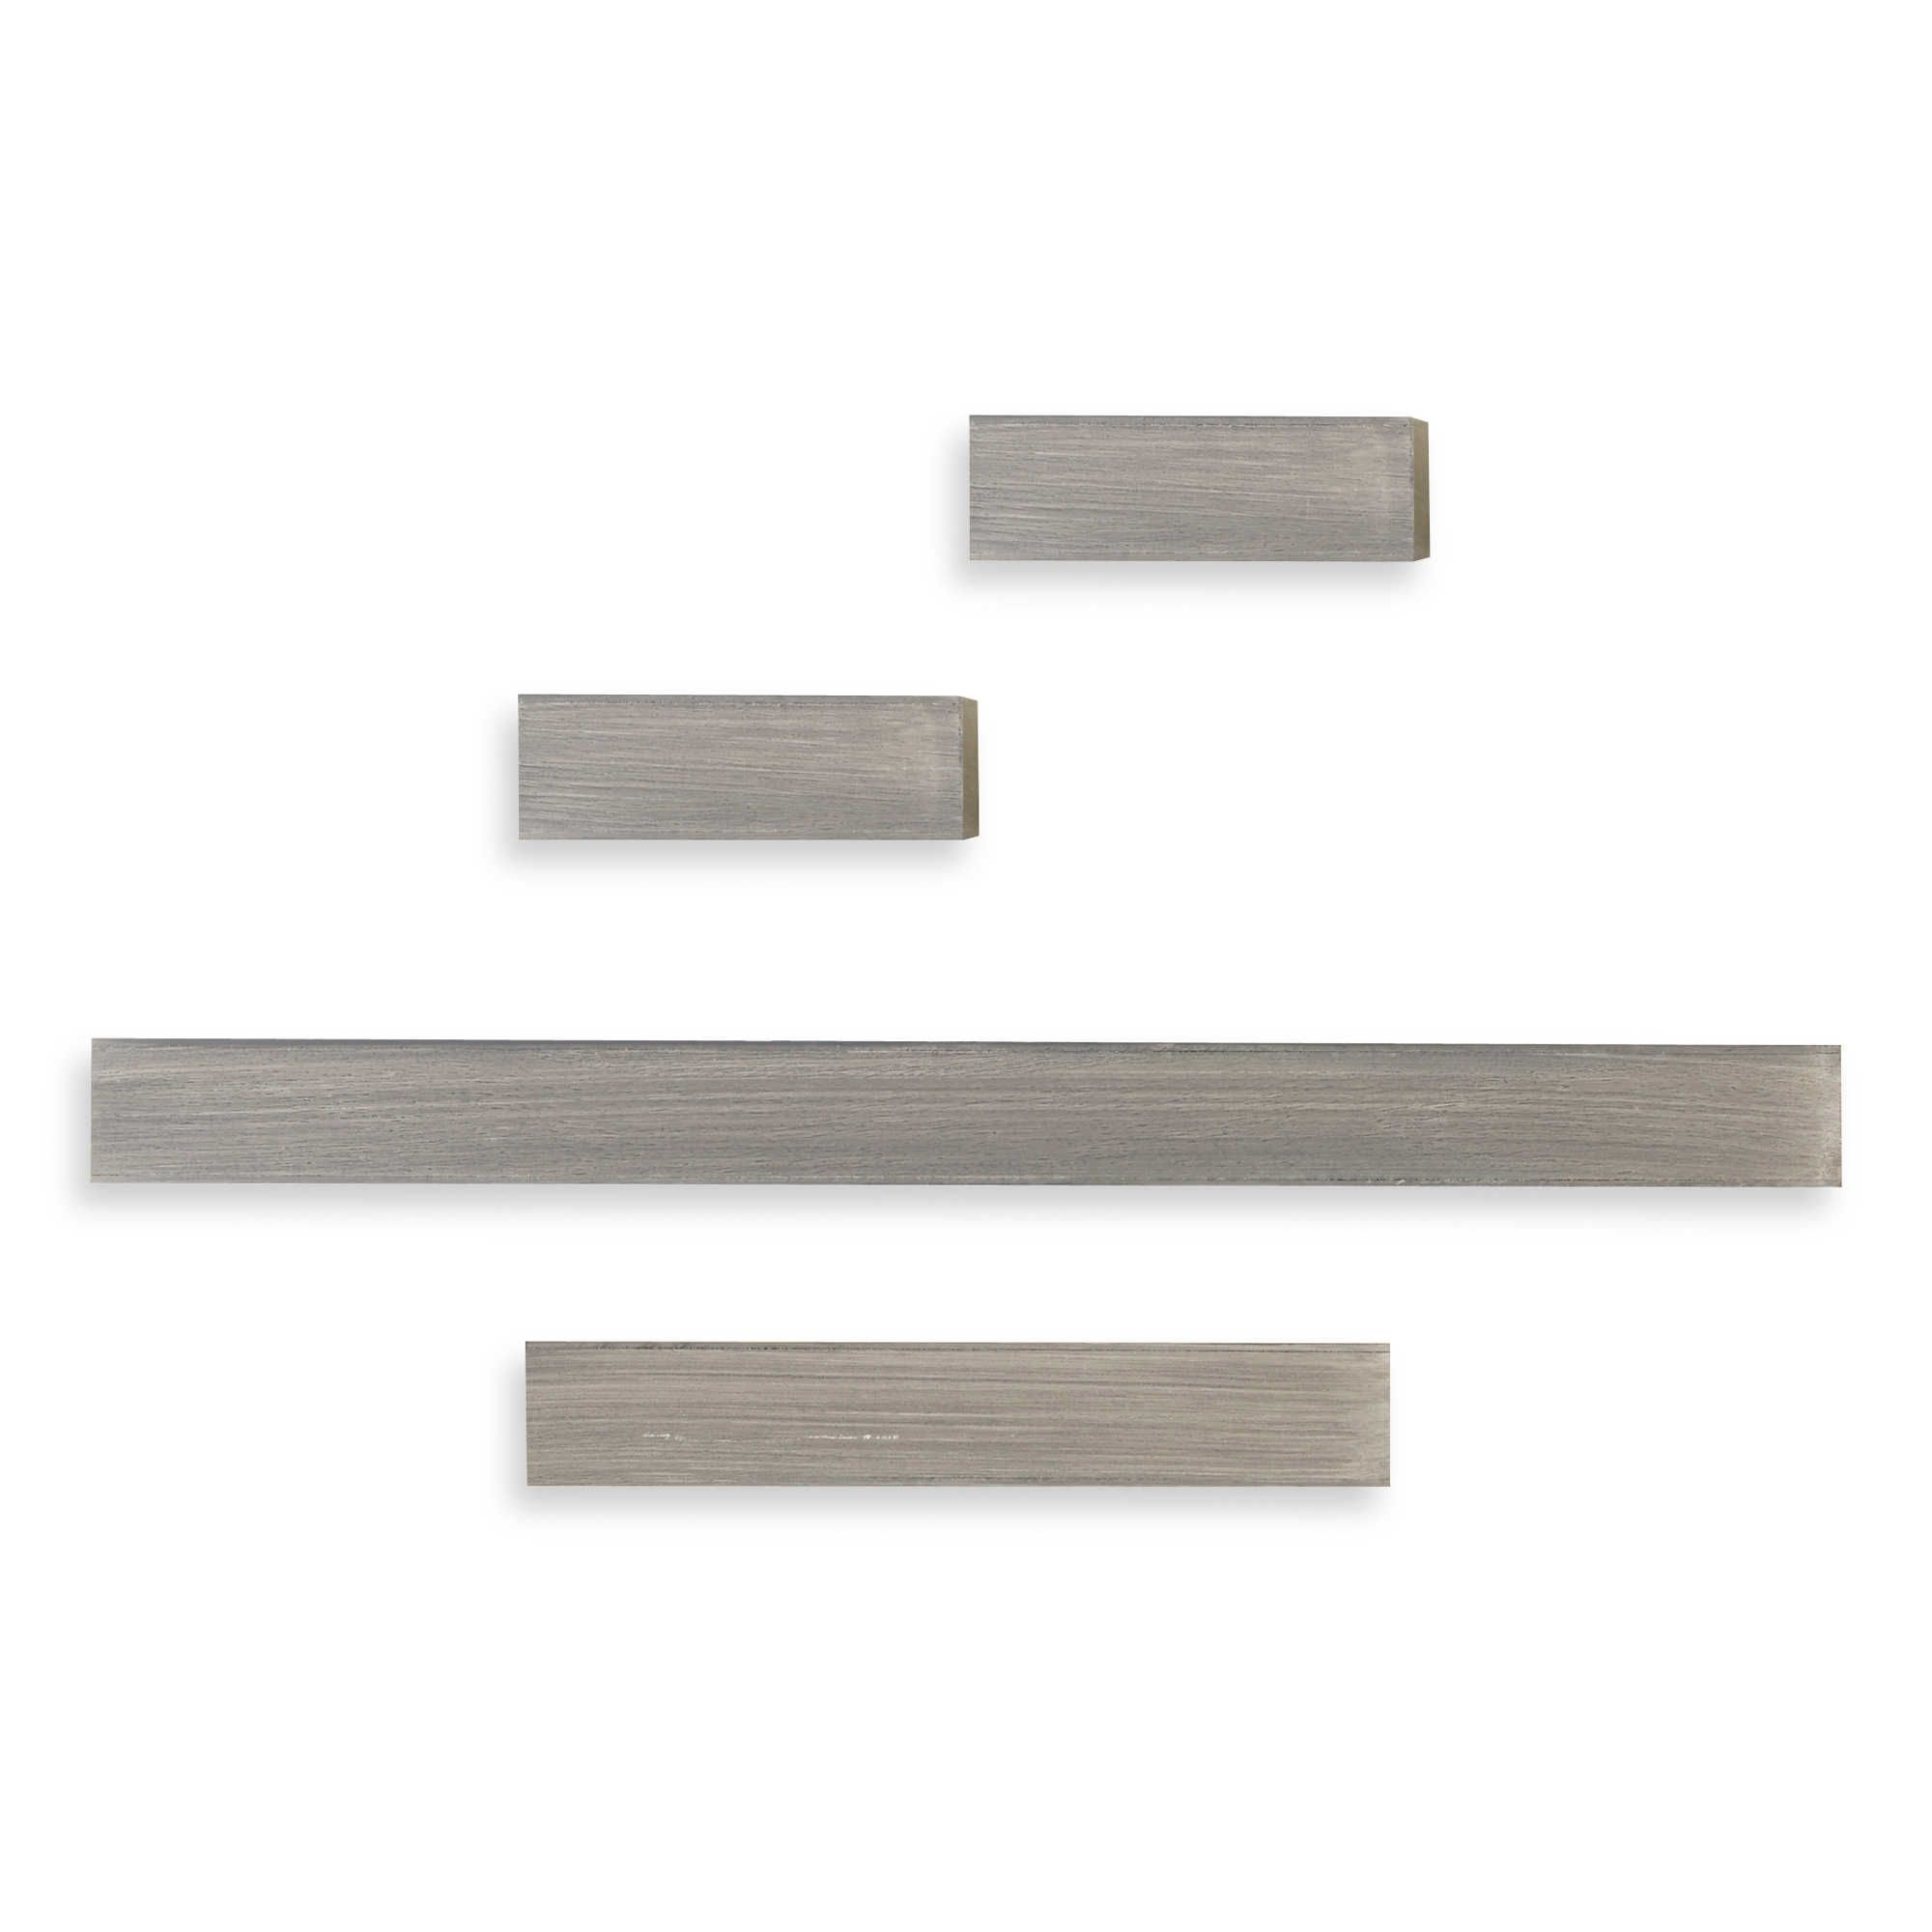 Melannco Floating Shelves Interesting Melannco® Floating Shelves In Grey Set Of 4  Living Room Review